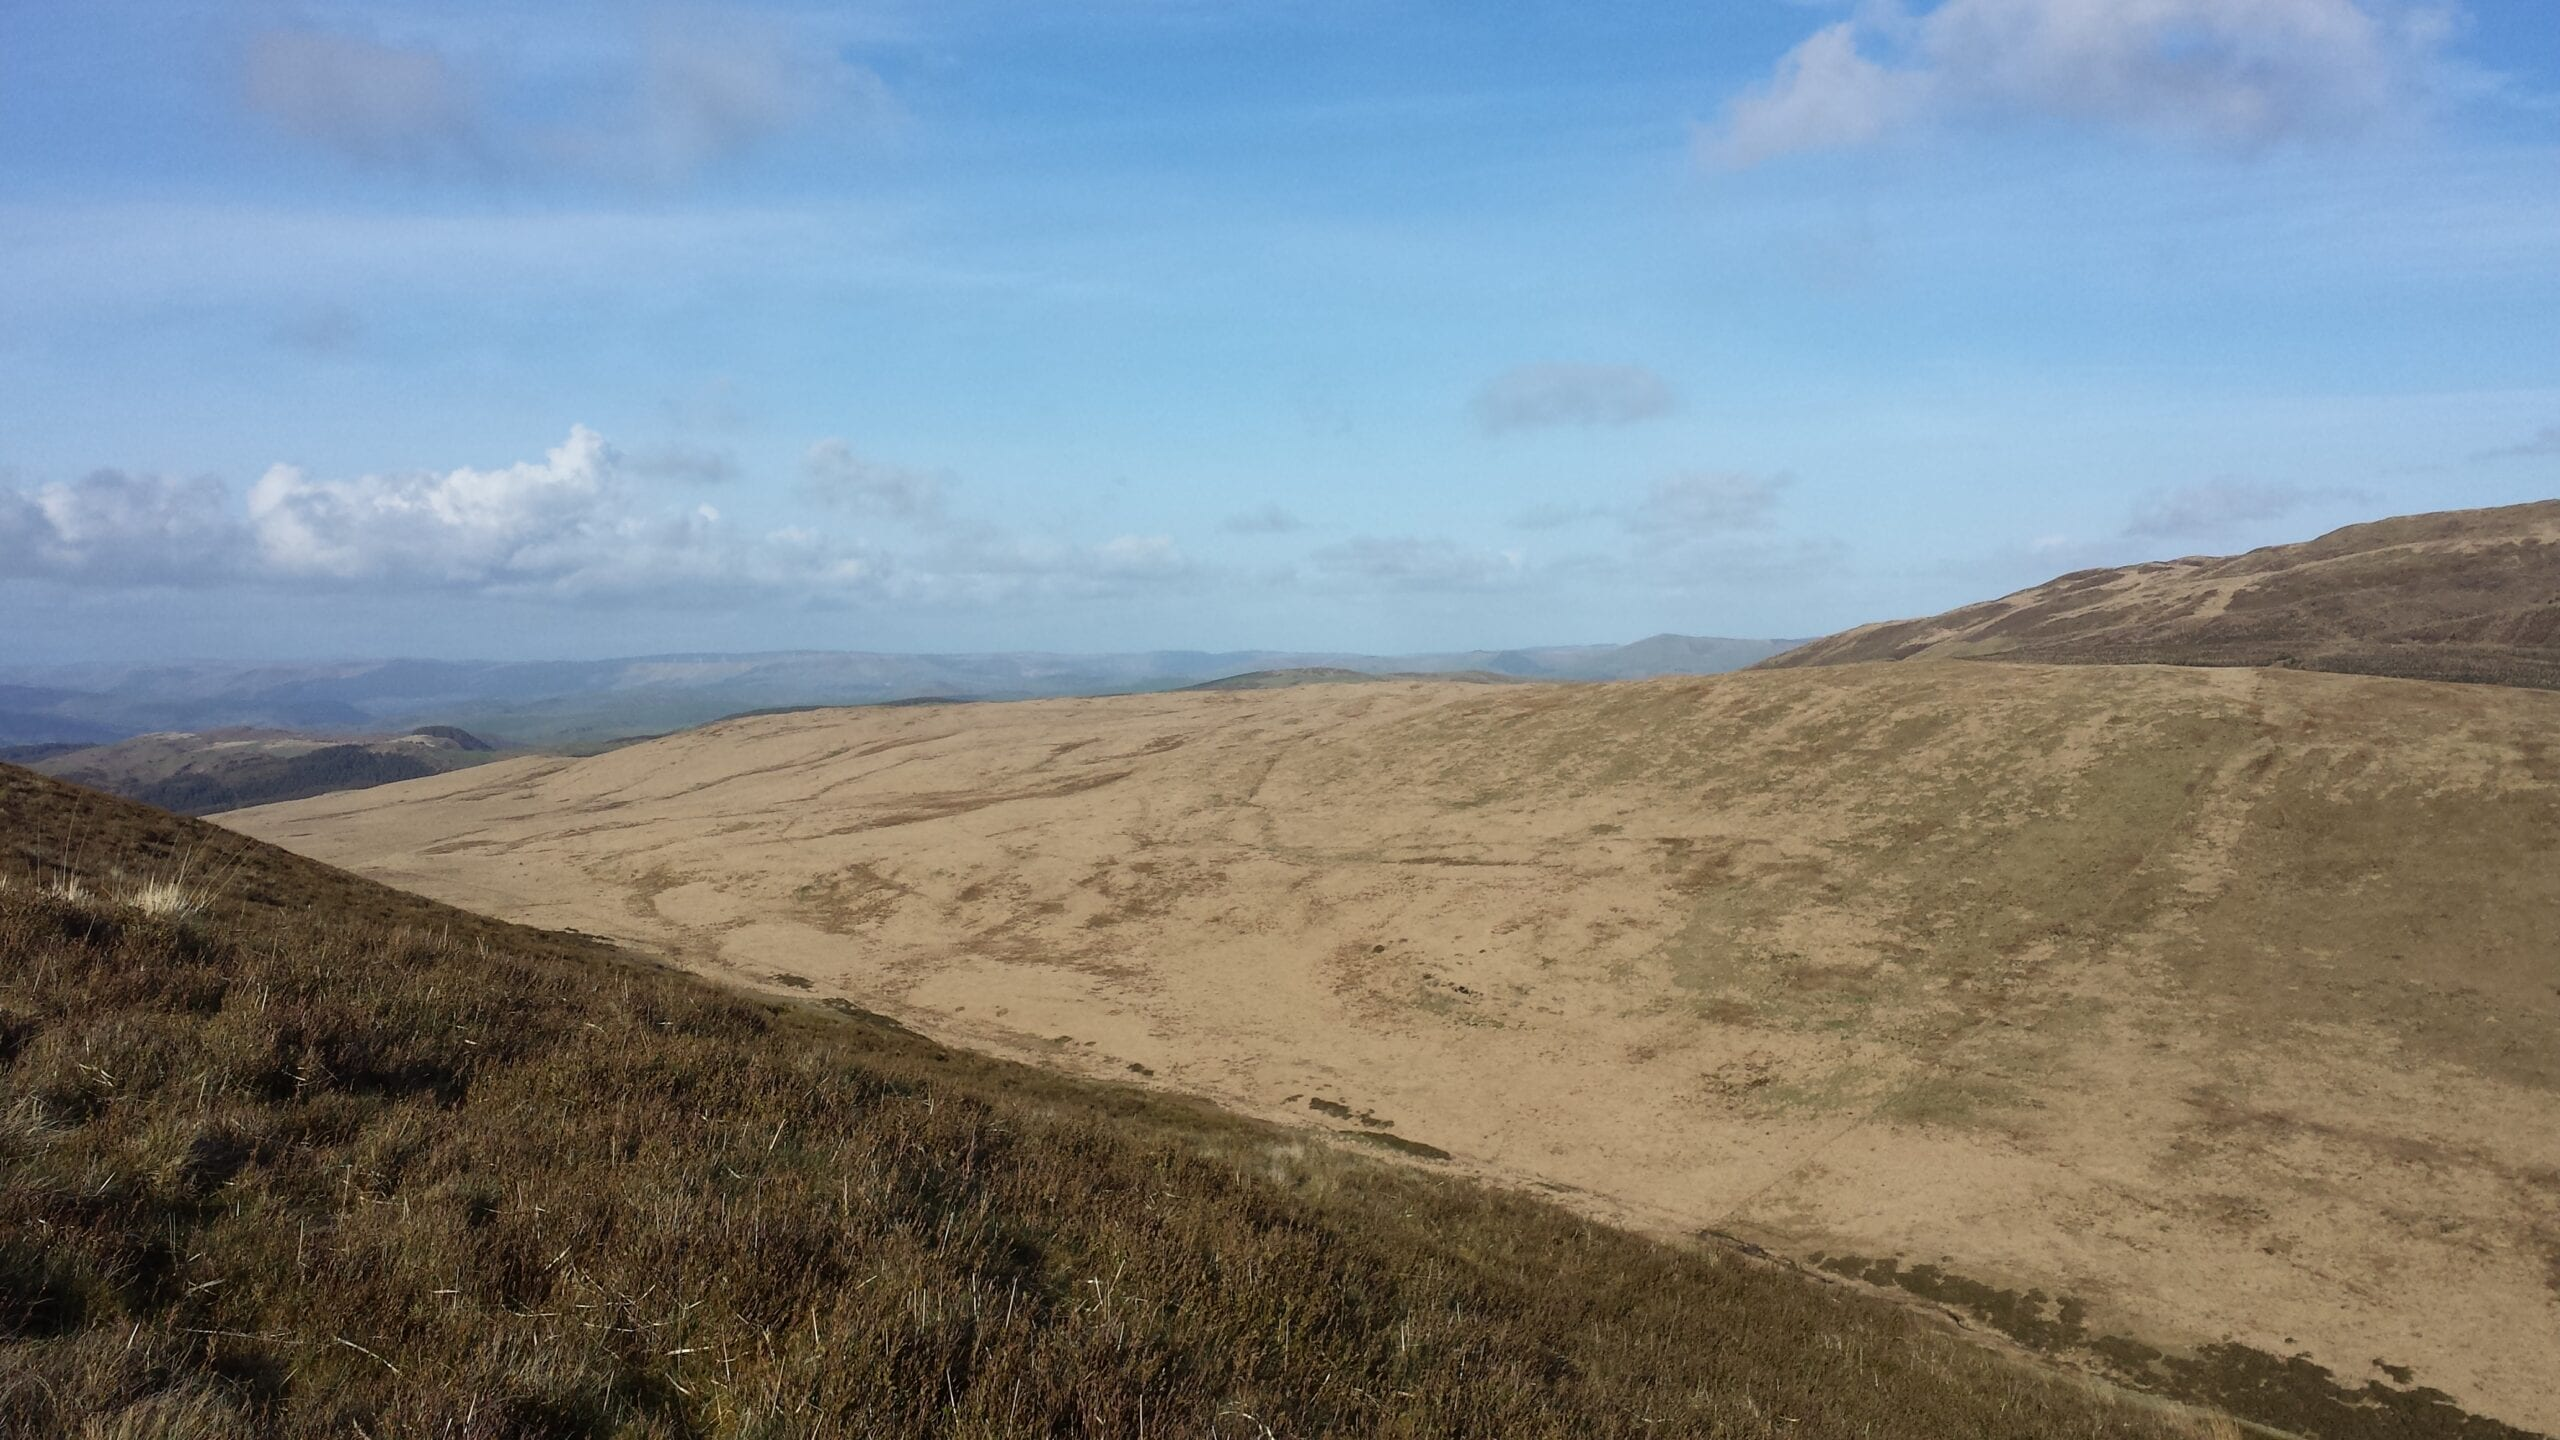 View of Bwlch Corog